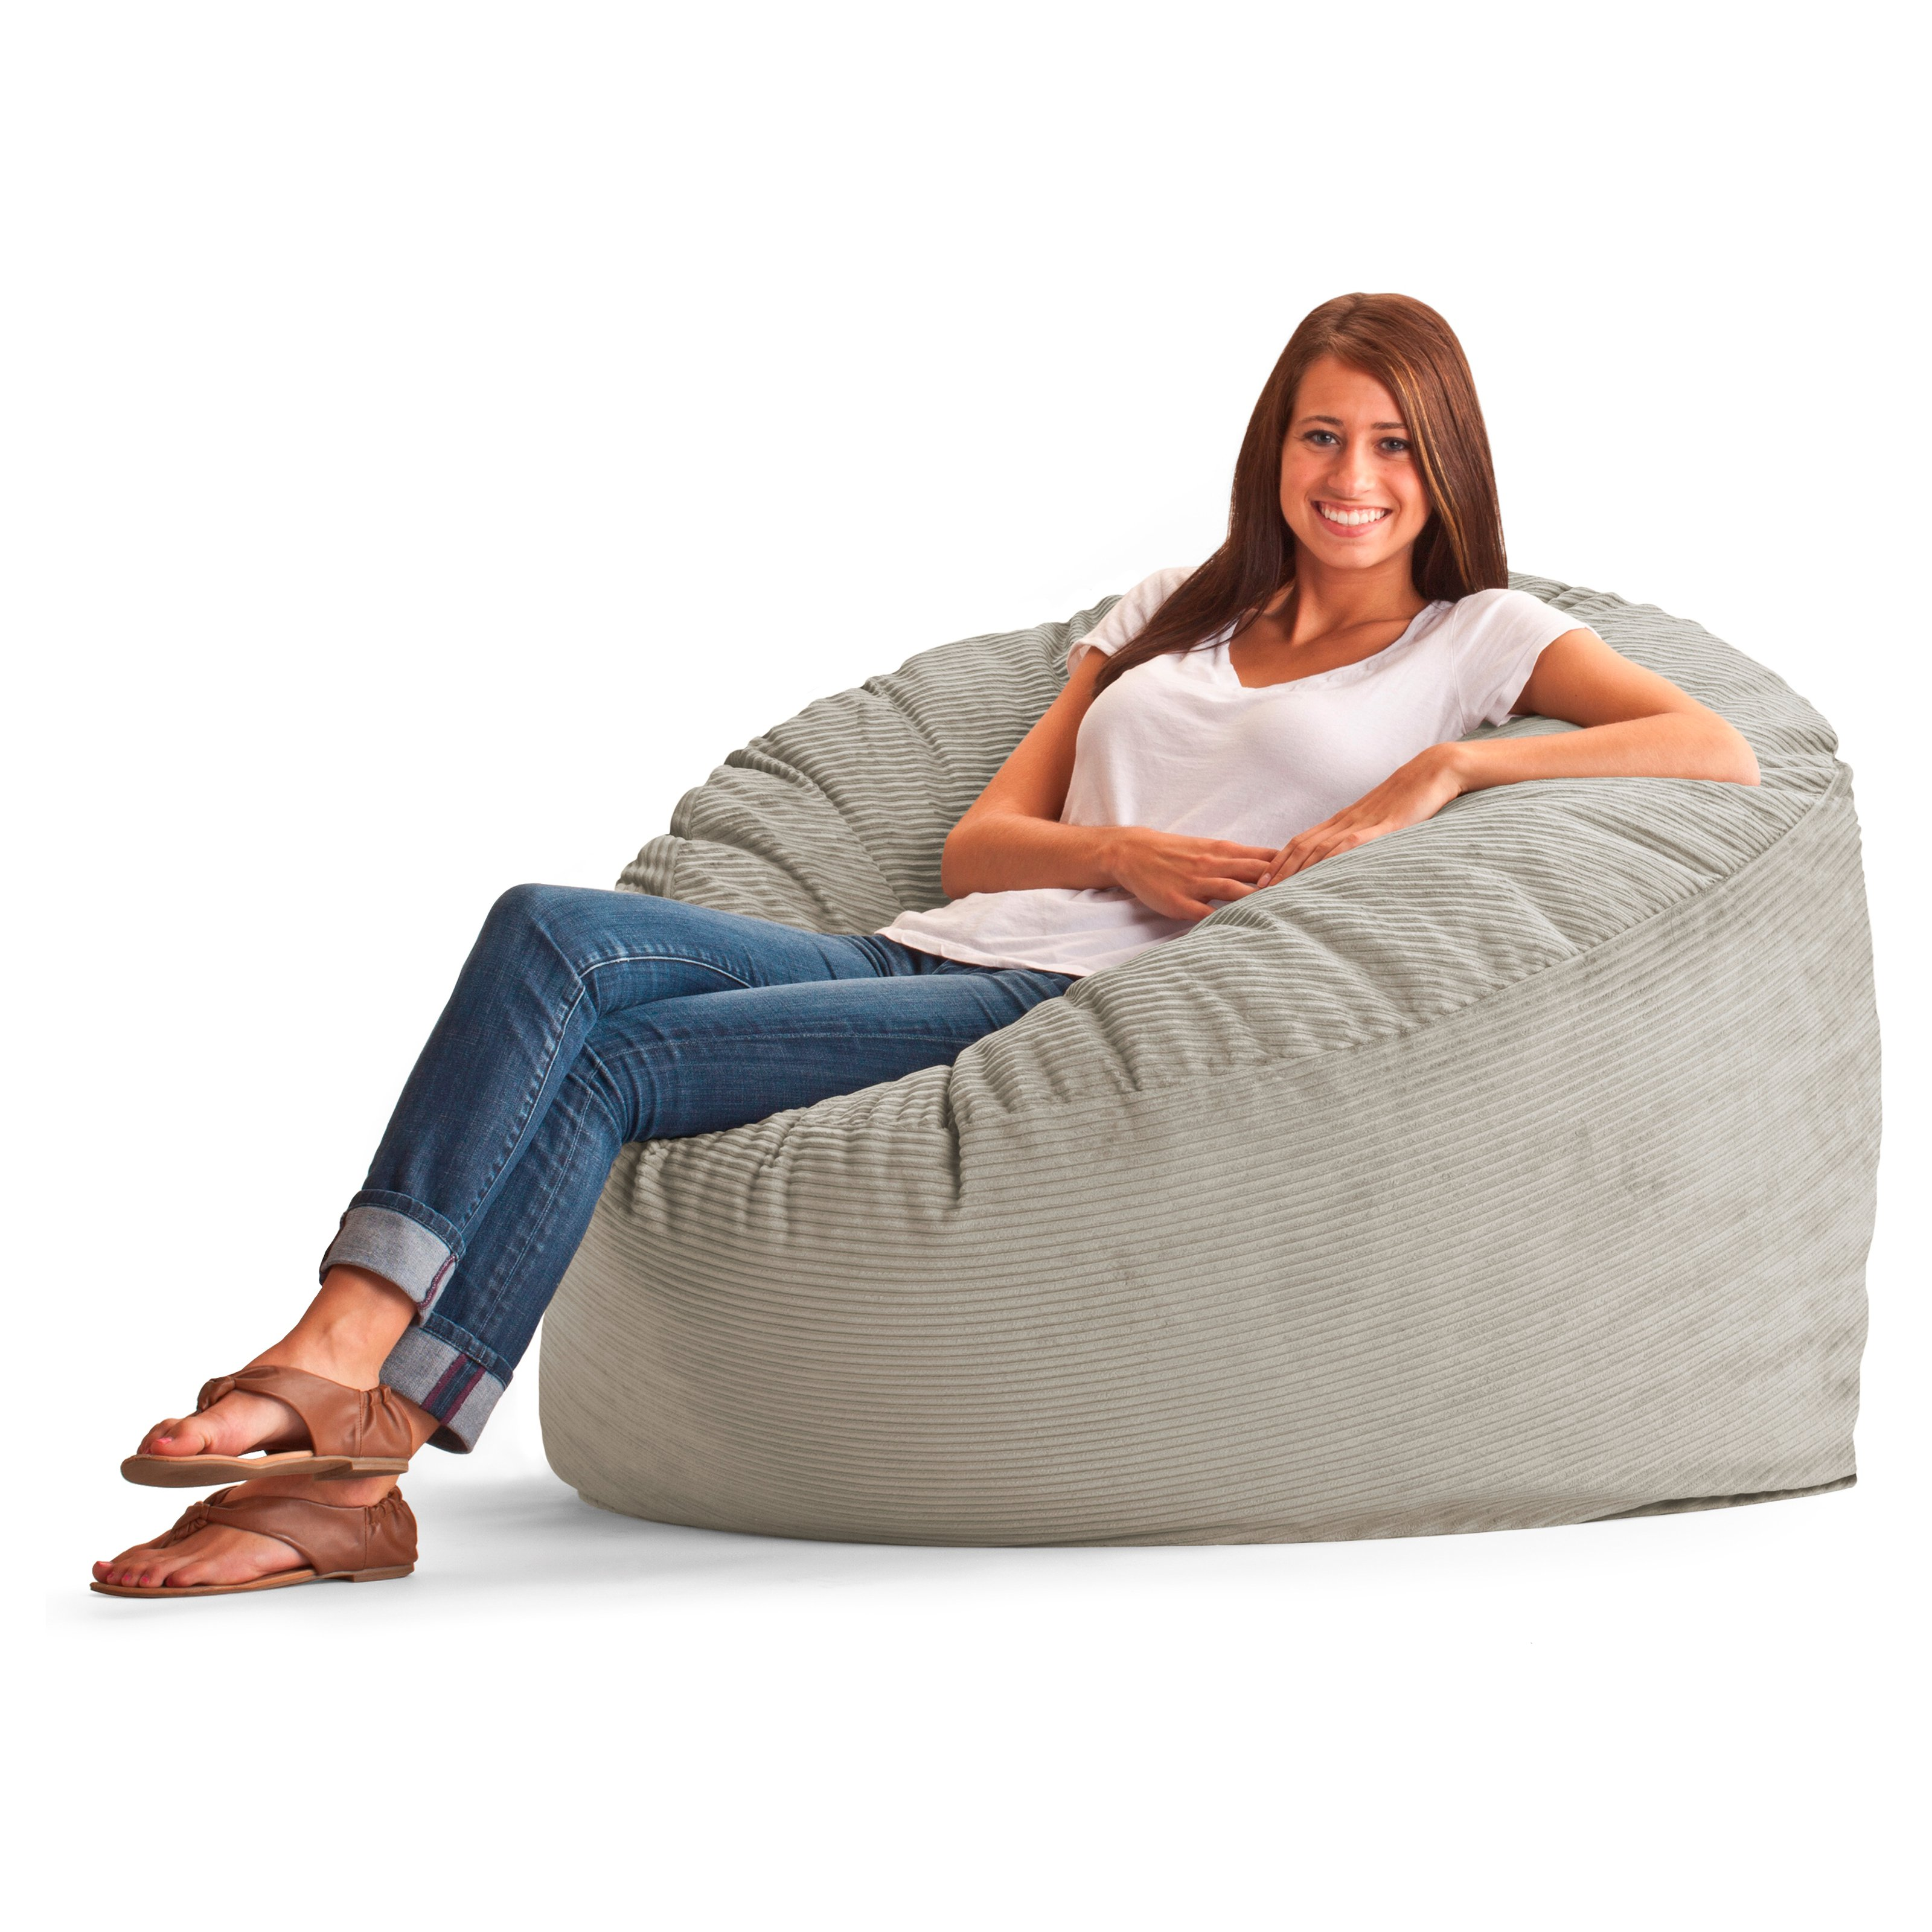 Genial Original FUF Chair 4 Ft. Large Wide Wale Corduroy Bean Bag Lounger   Beach